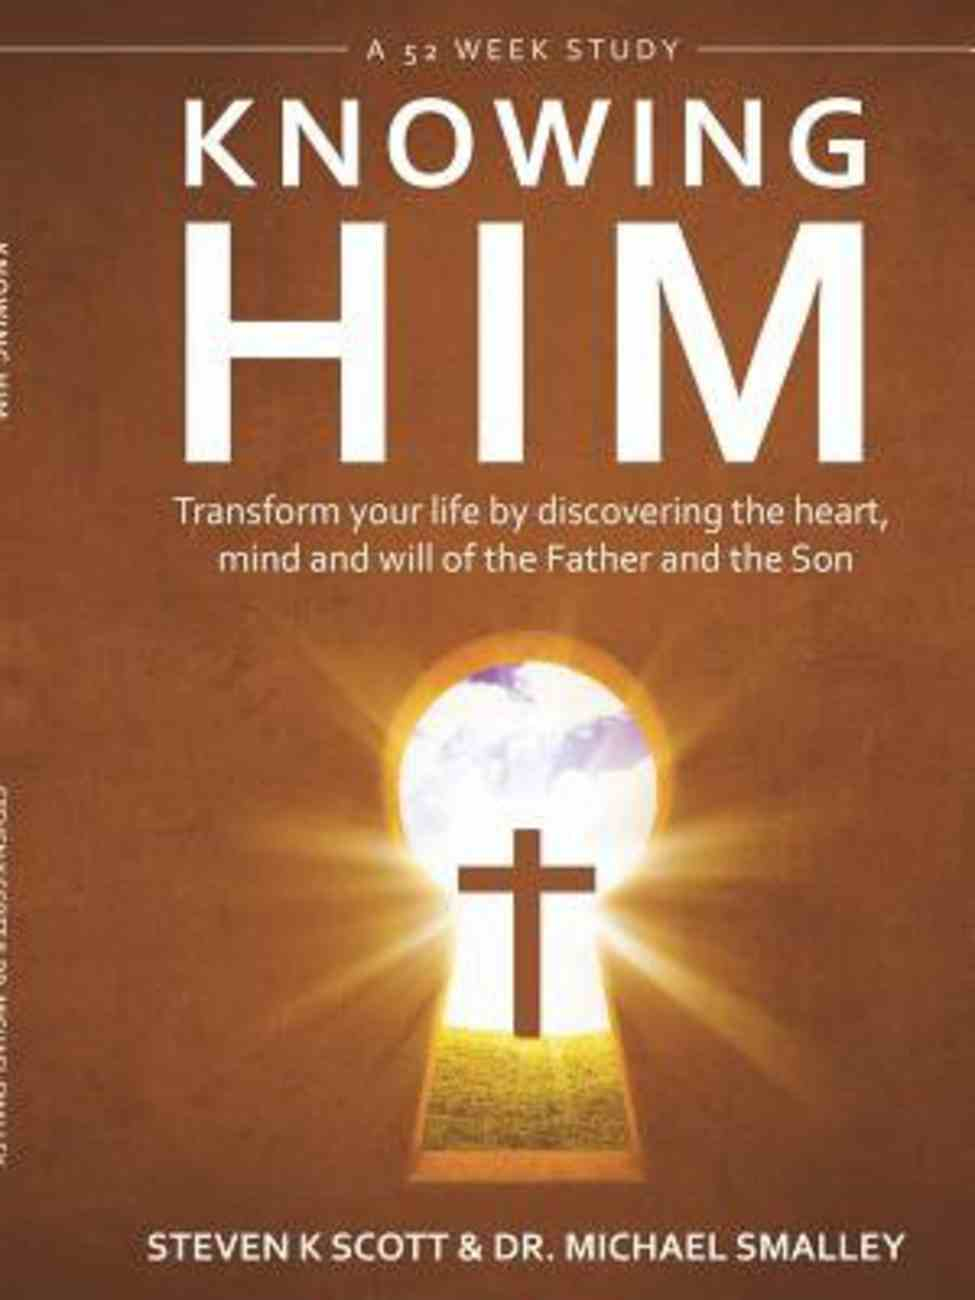 Knowing Him: Transform You Life By Discovering the Heart, Mind and Will of the Father and the Son Paperback